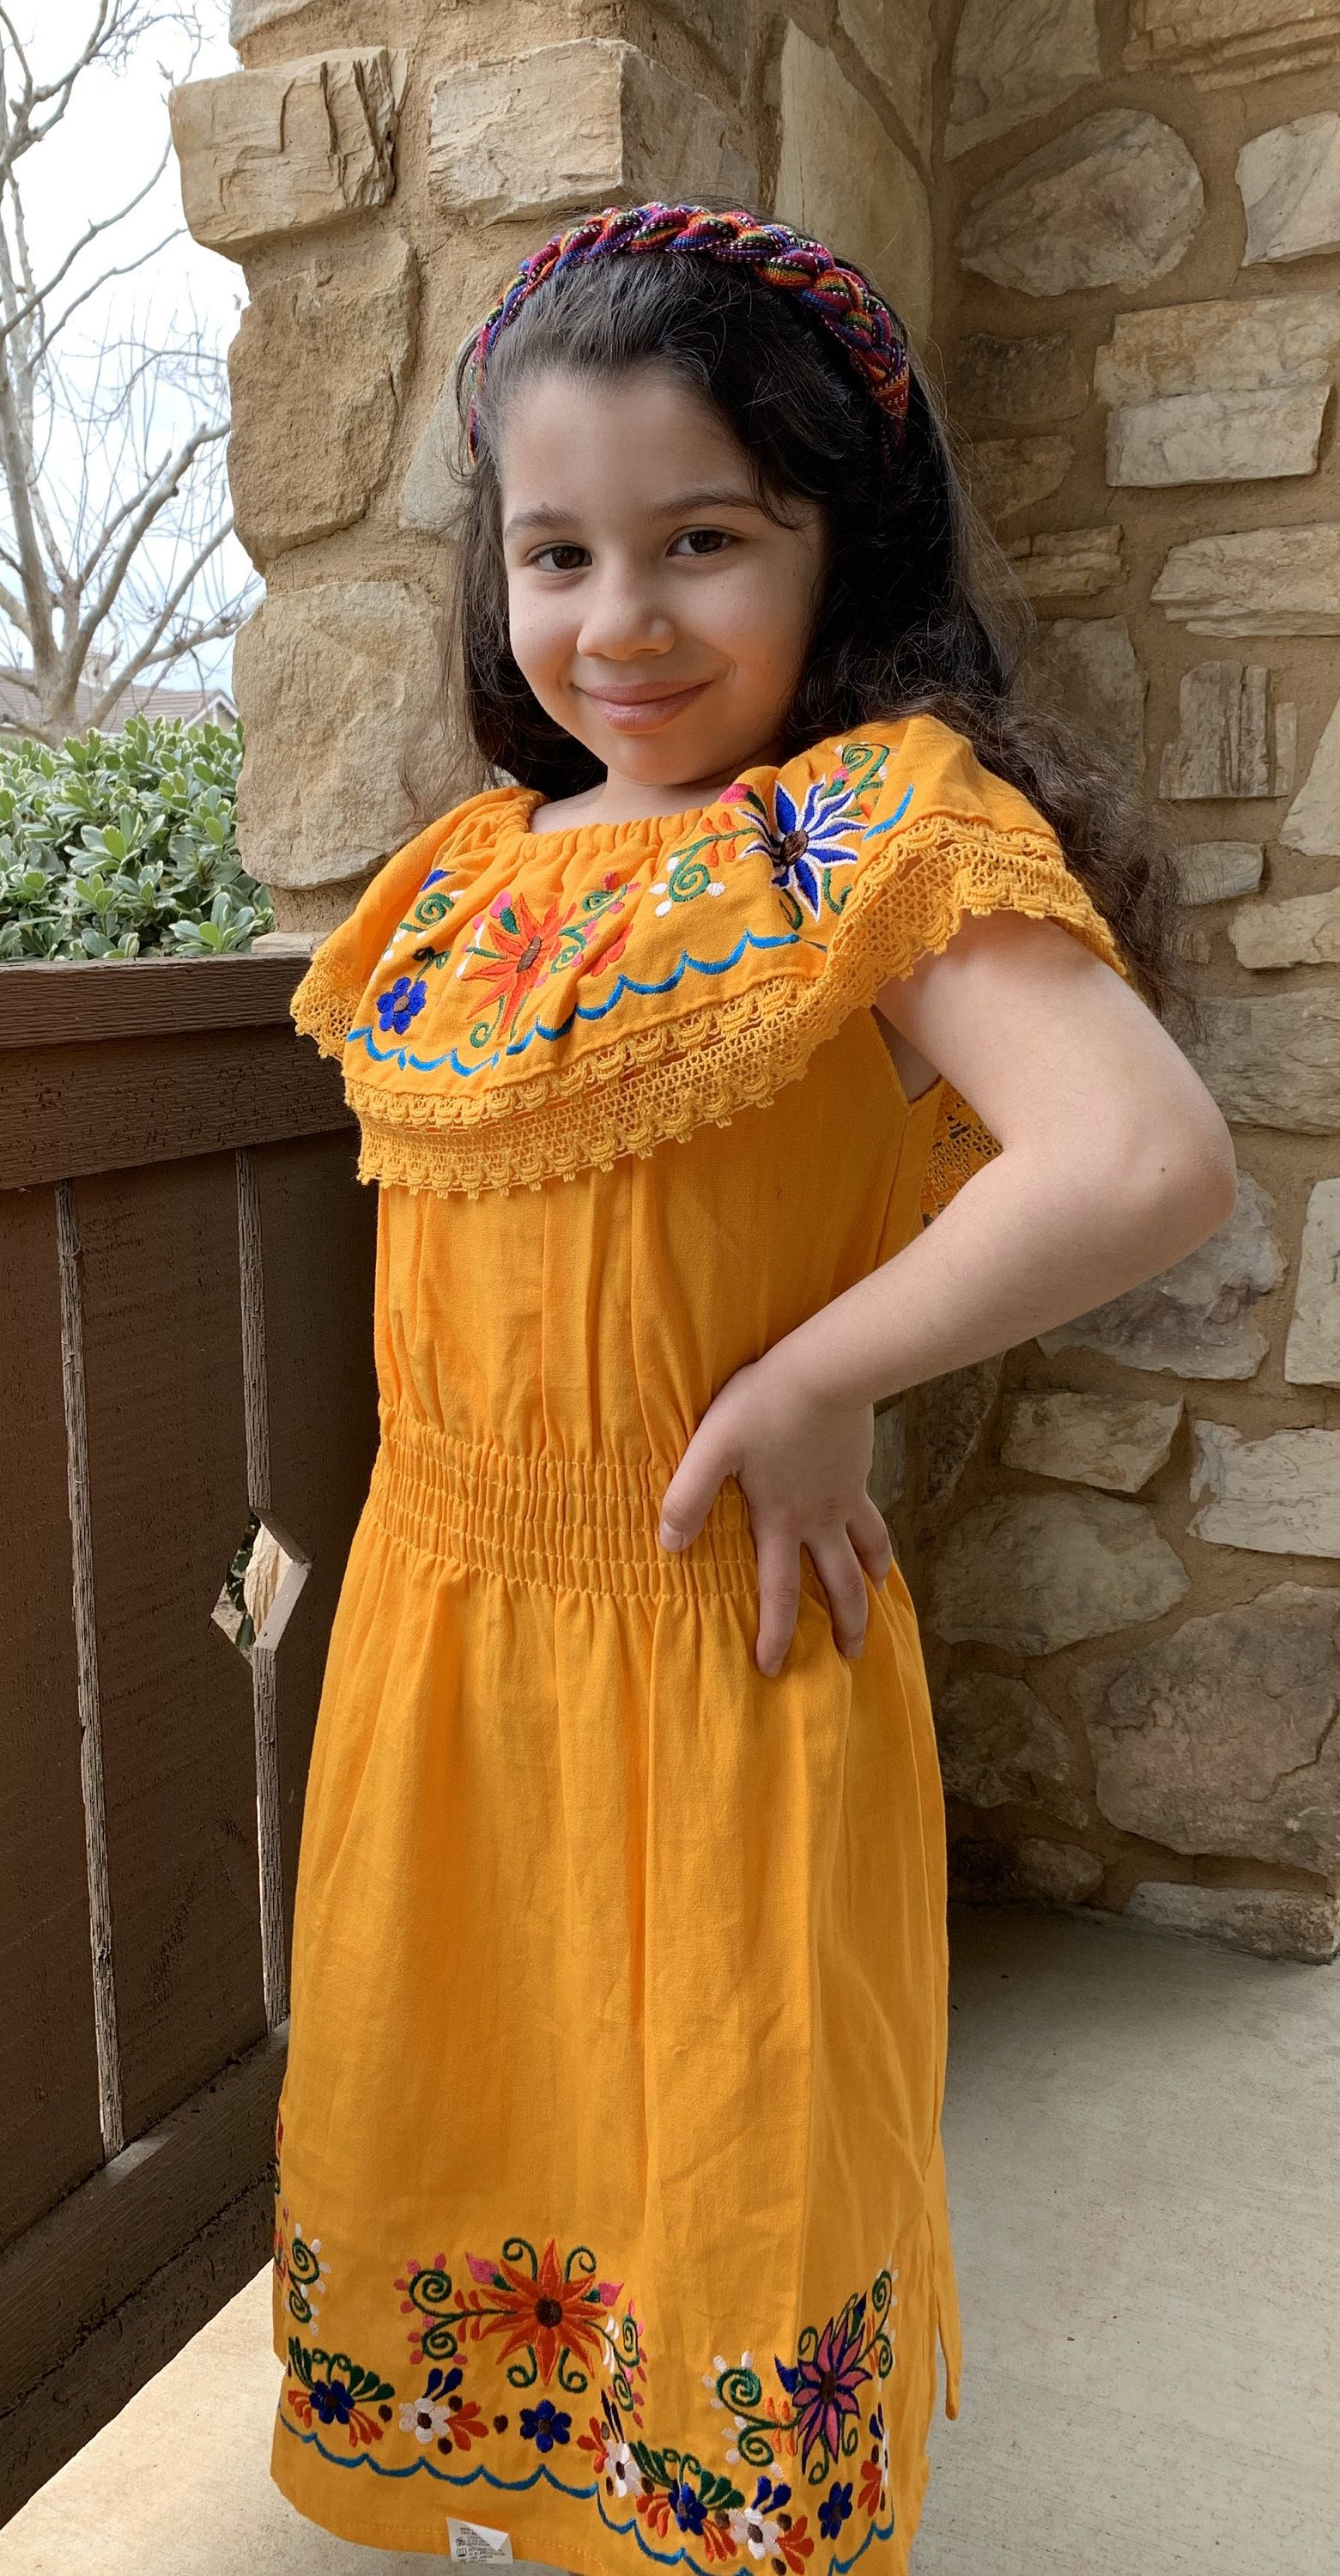 Excited To Share The Latest Addition To My Etsy Shop Mexican Girl Dress Girl S Off The Shoulder Dress Boho Girl Dress Fiesta Dress Boho Girl Girls Dresses [ 3000 x 1561 Pixel ]